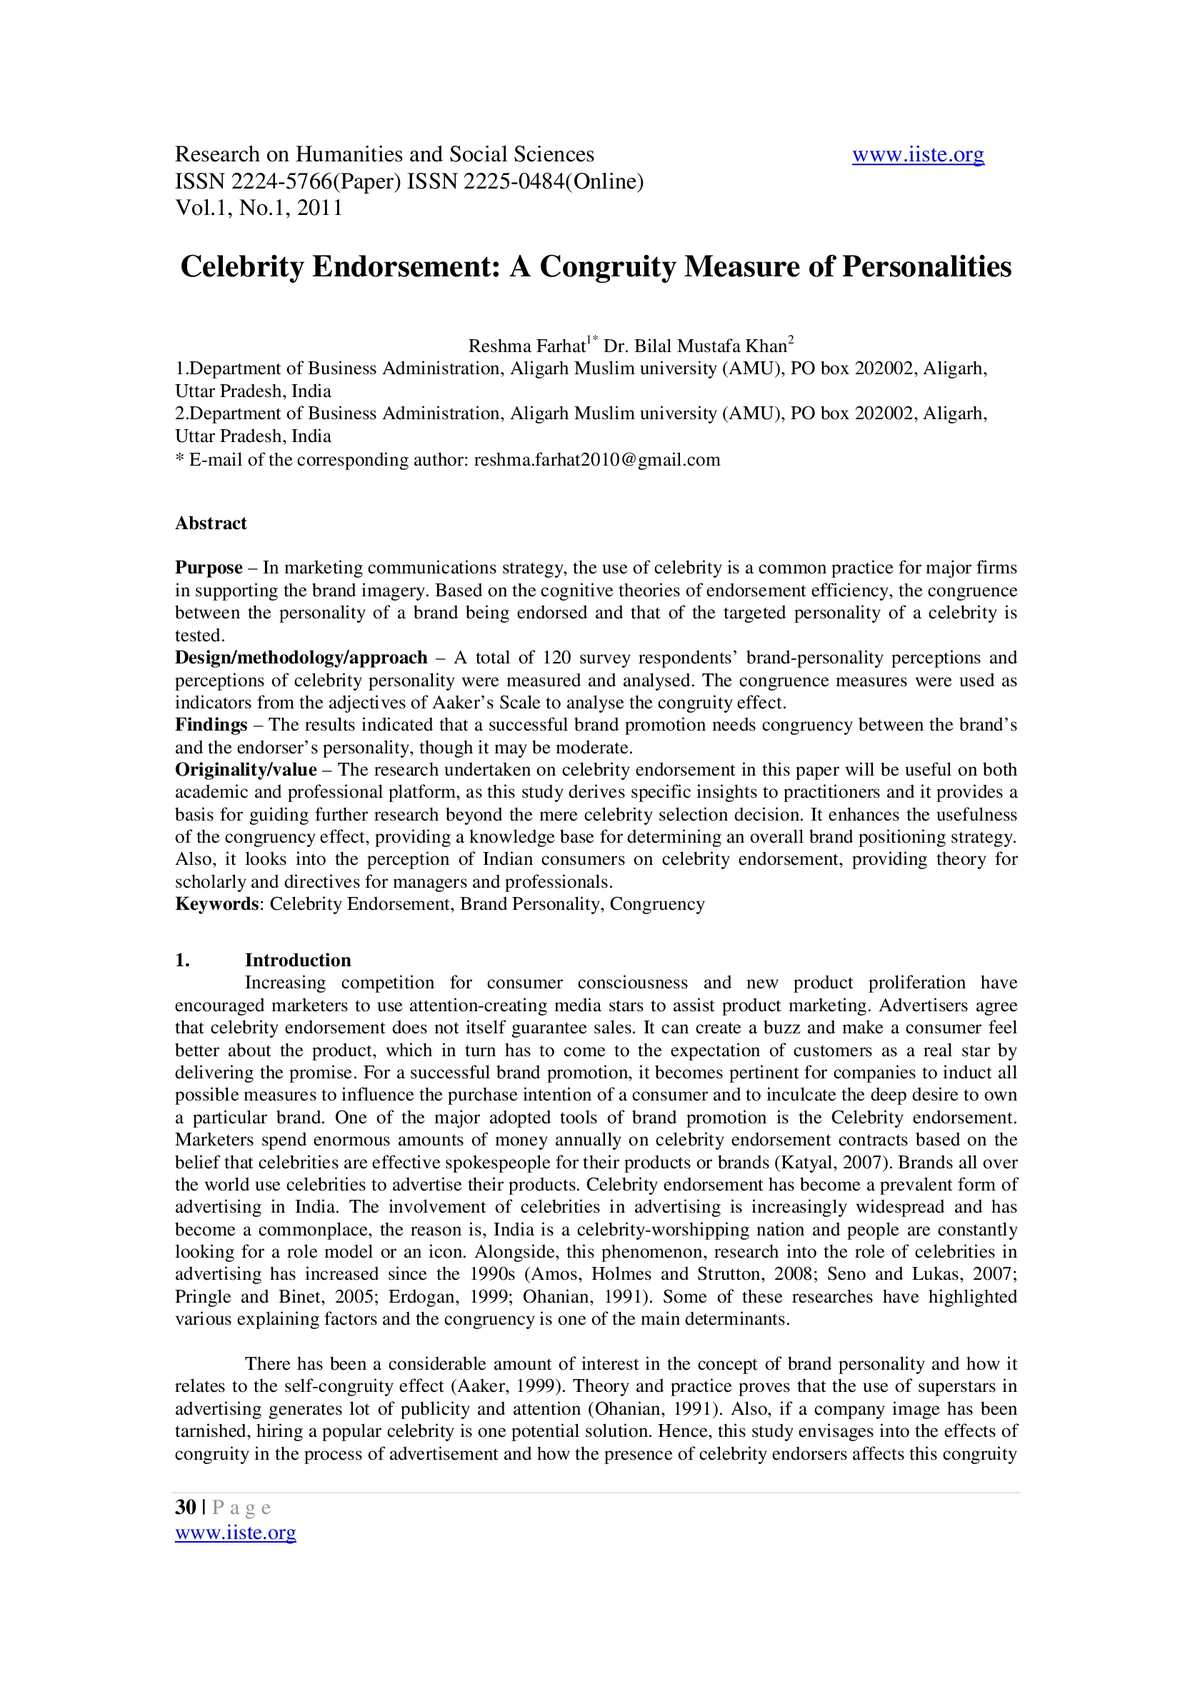 research paper on celebrity endorsement View and download endorsement essays examples essay paper #: 97516602 celebrity endorsement strategy: in this research paper.